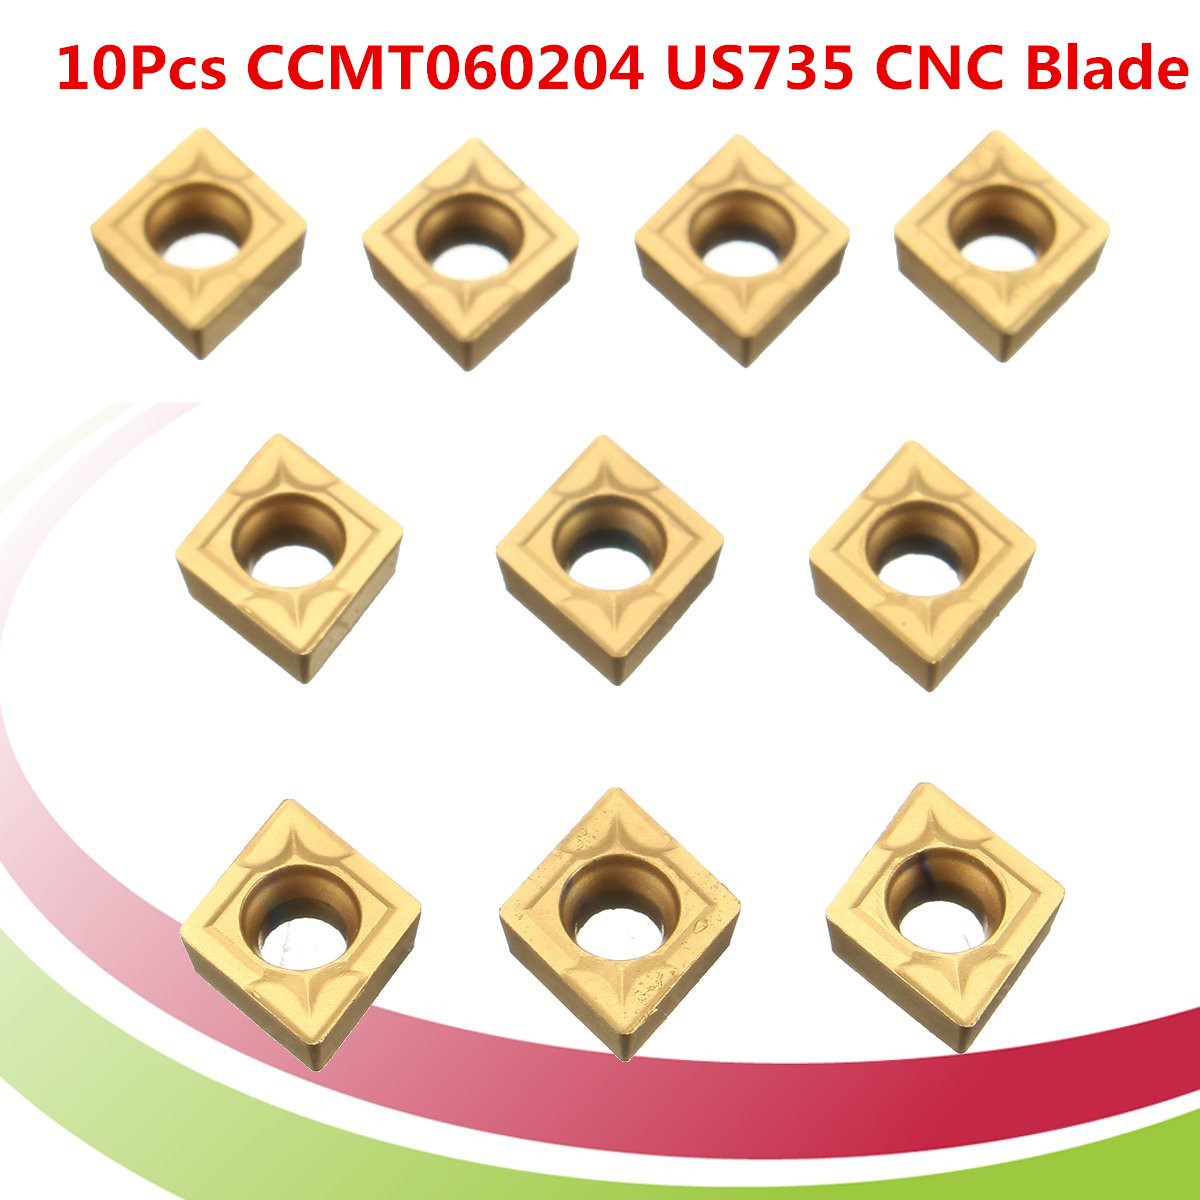 CCMT060204-MM P7320 CCMT21.51 CNC carbide inserts For Stainless steel 10Pcs